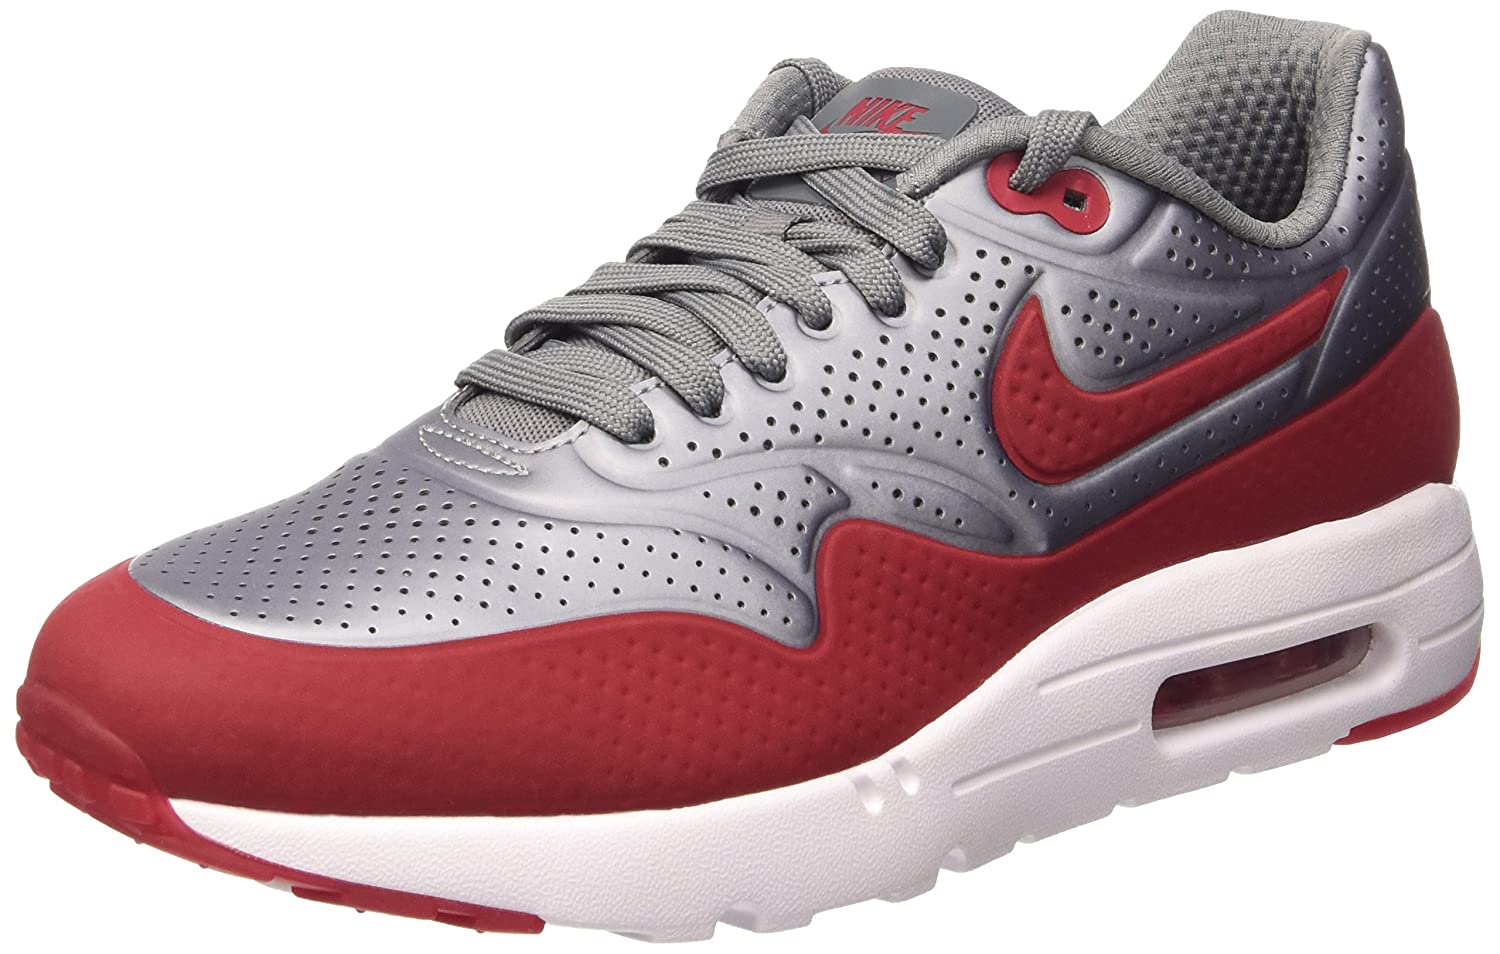 buy online 9c614 7d41e NIKE Men s Air Max 1 Ultra Moire Trainers  Amazon.co.uk  Shoes   Bags